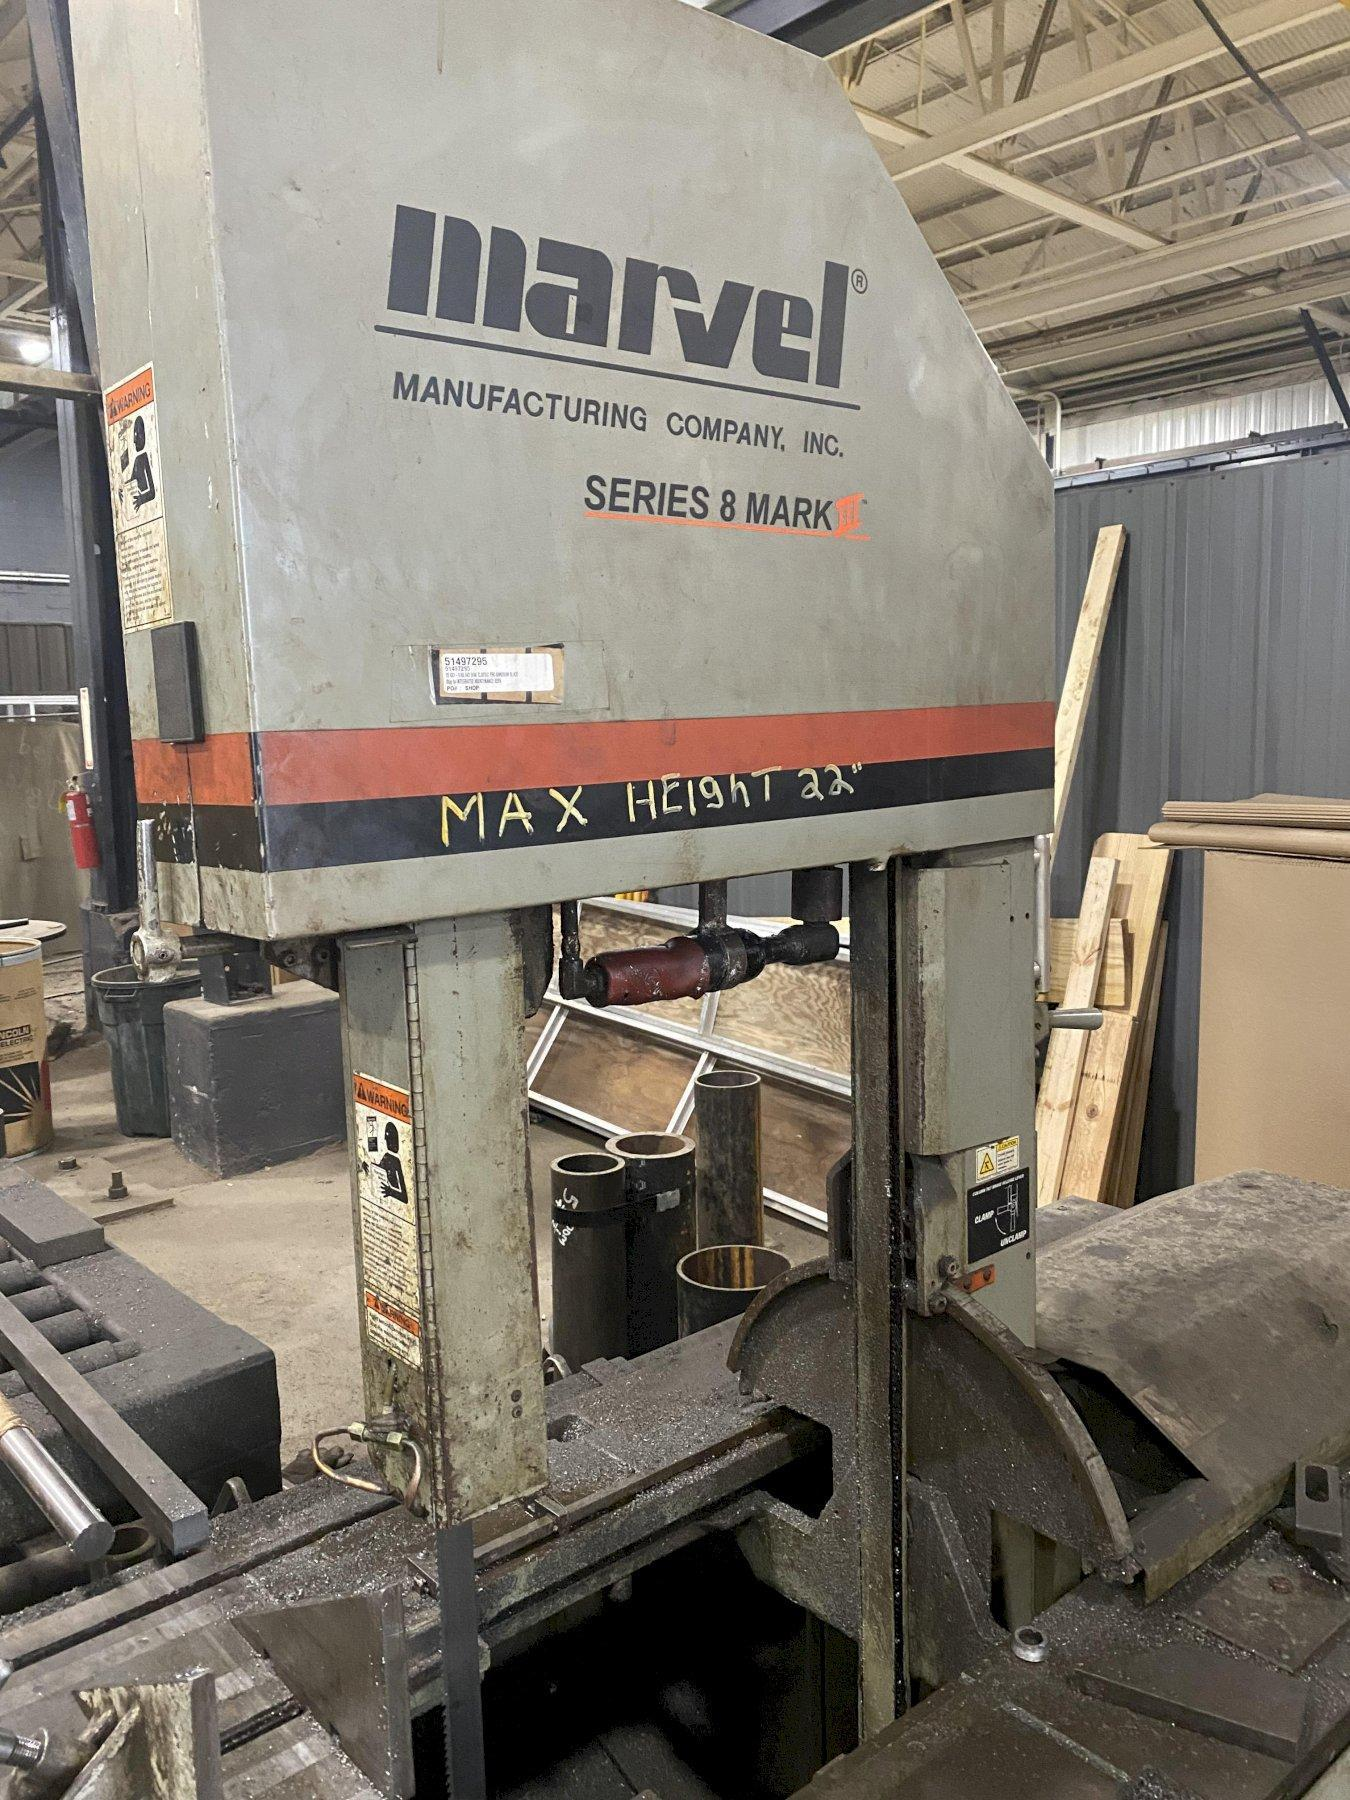 "18"" x 22"" MARVEL SERIES 8 MARK III VERTICAL TILTING BANDSAW"